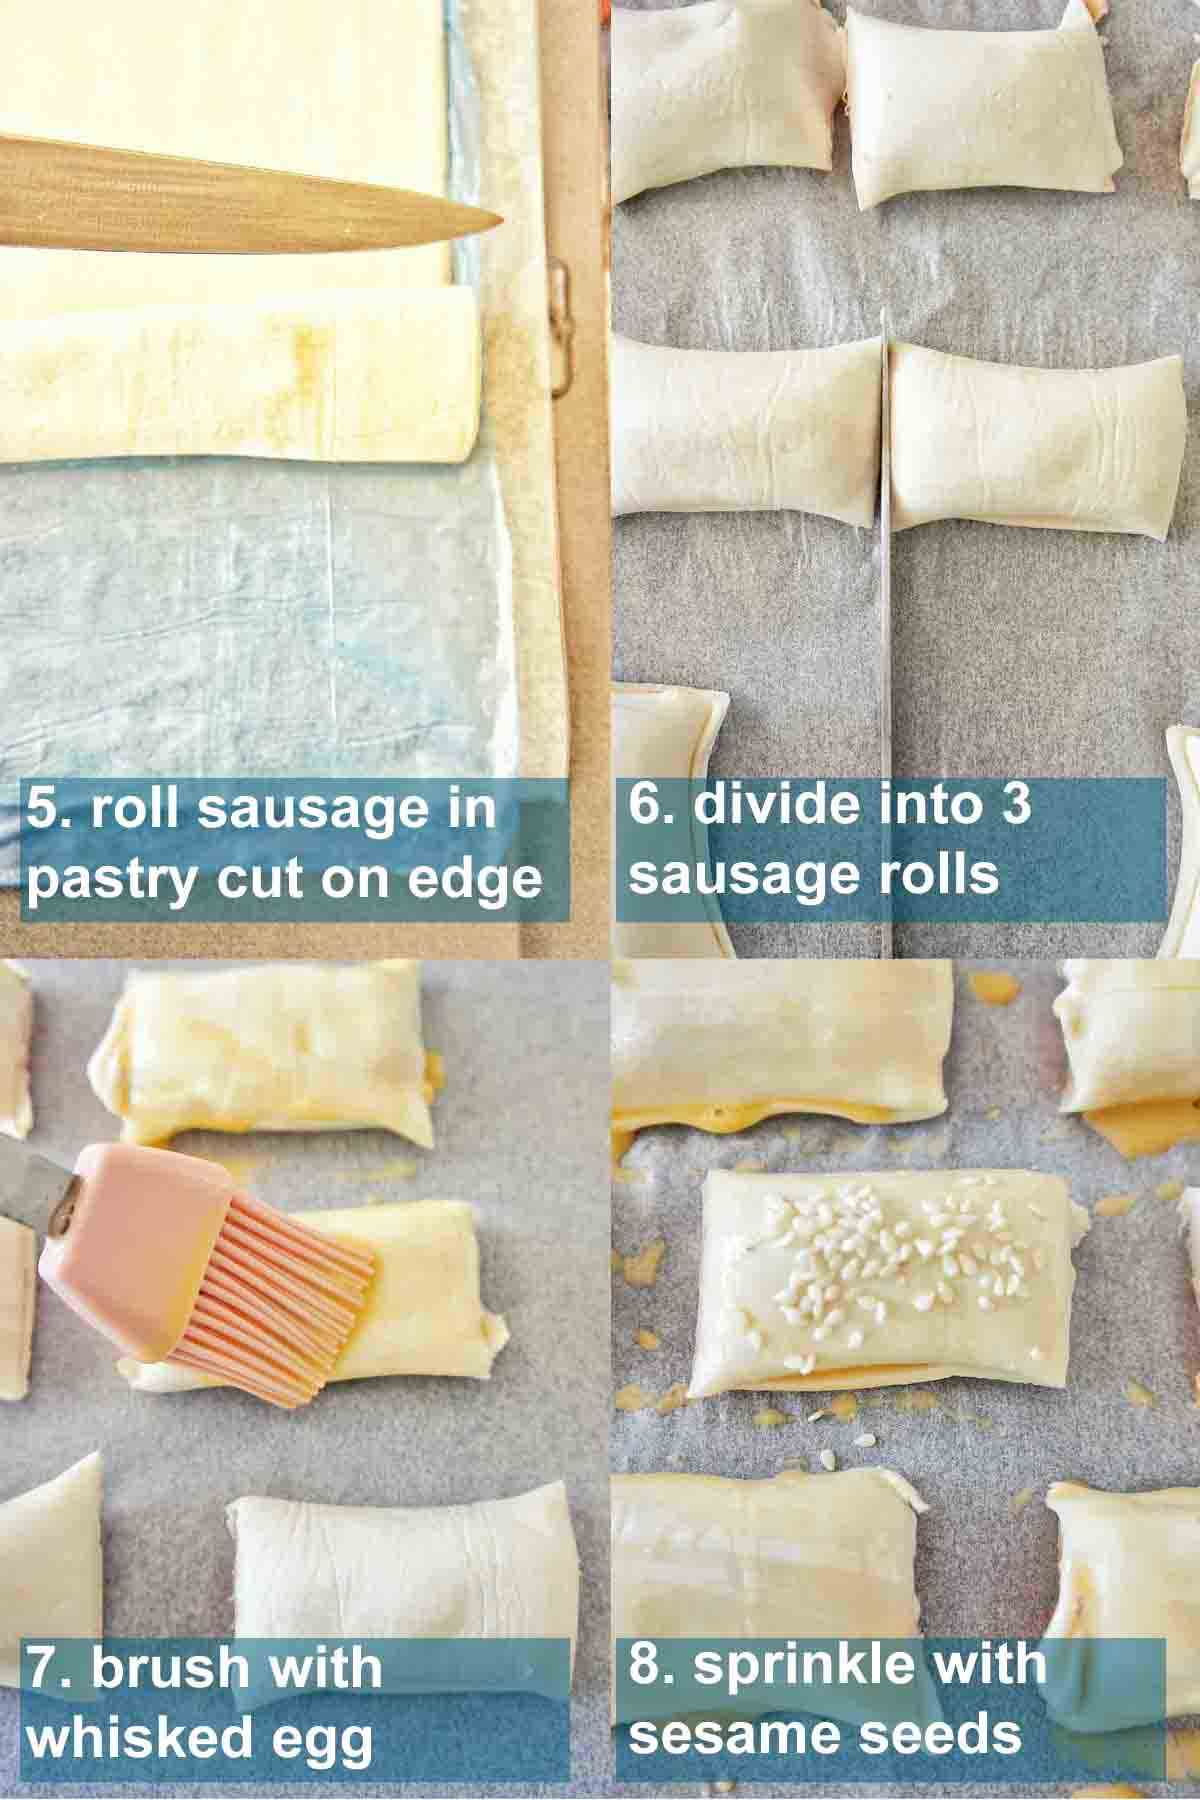 Step by step process shots for sausage rolls with text overlay